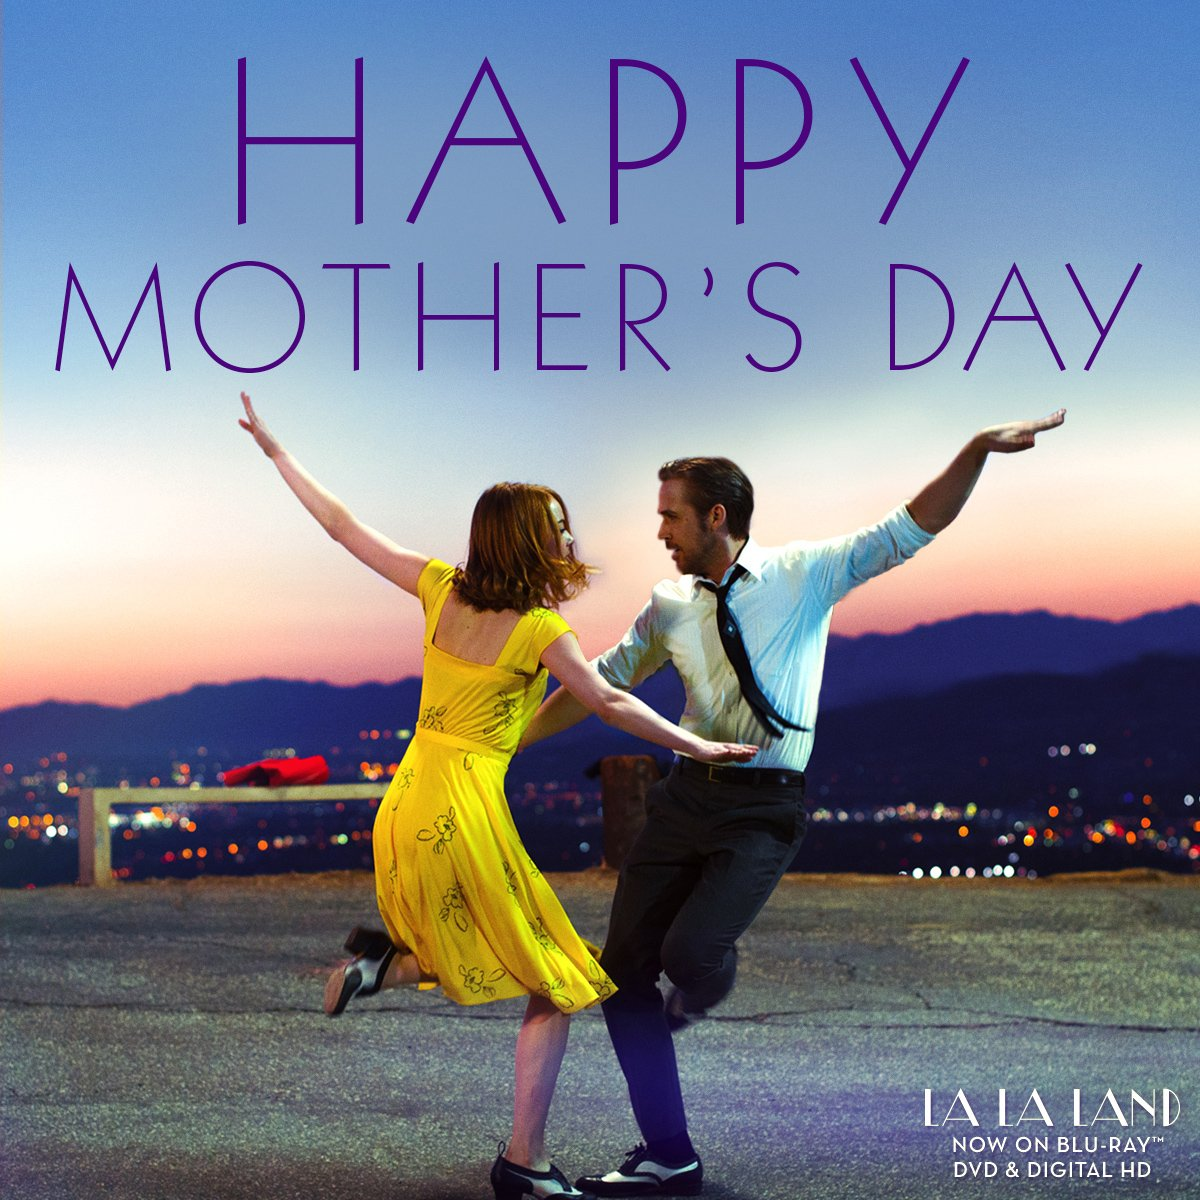 Happy Mother's Day from #LALALAND! https://t.co/qUWWUd8nCz